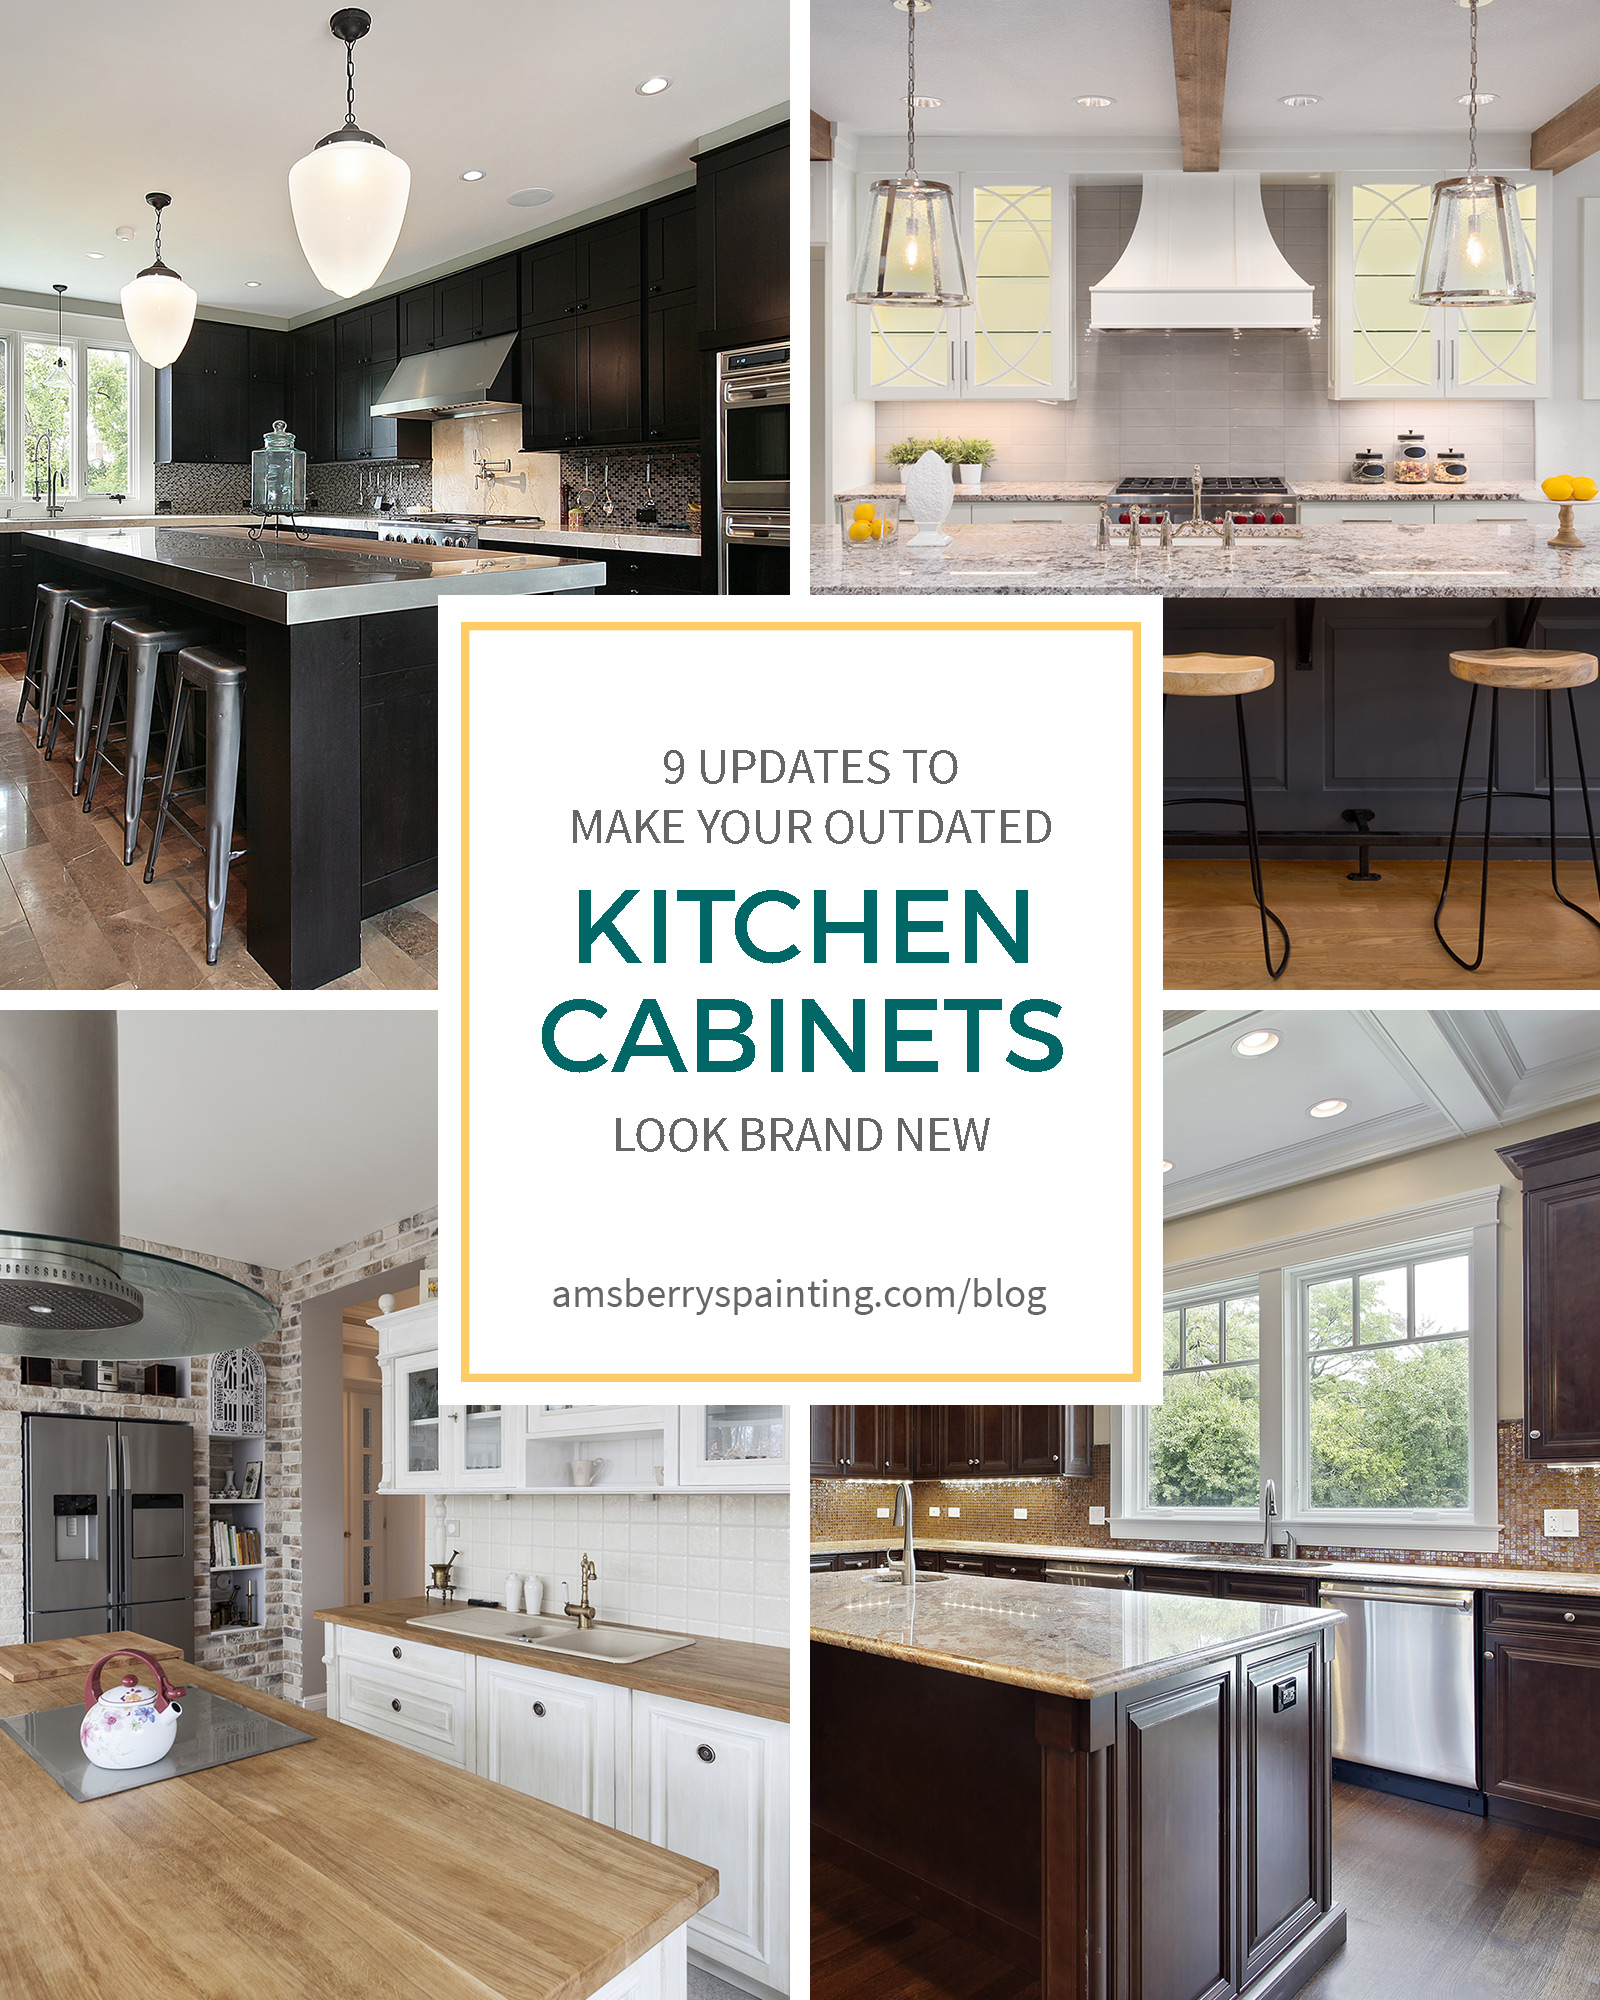 03 Oct 9 Upgrades To Make Your Outdated Kitchen Cabinets Look Brand New